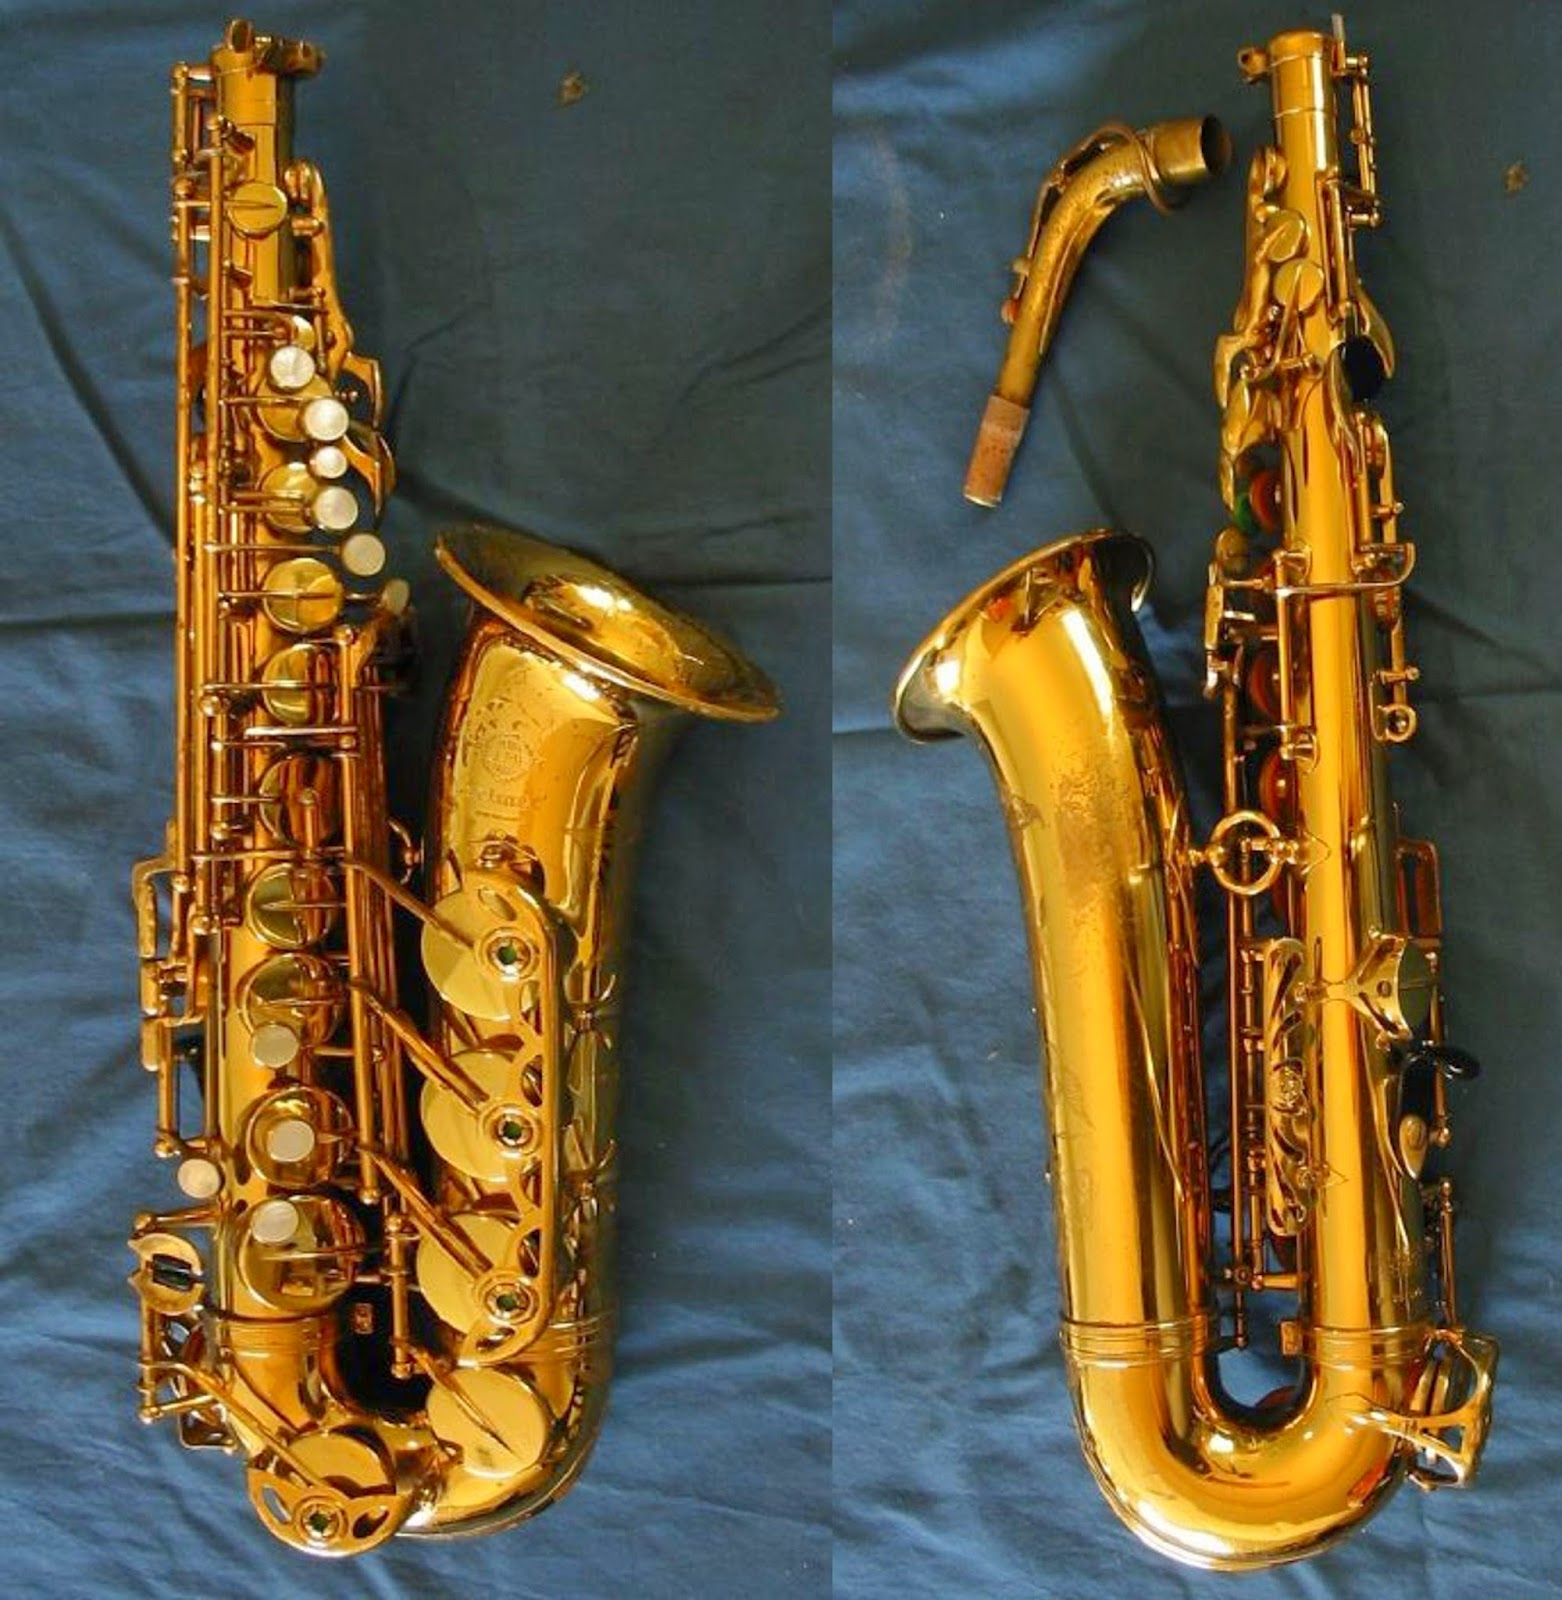 history of the sax In 1846, a belgium man by the name of adolphe sax developed one of the most influential instruments in today's musical realm this instrument would prove to be the definitive middle ground between powerful woodwind instruments and.